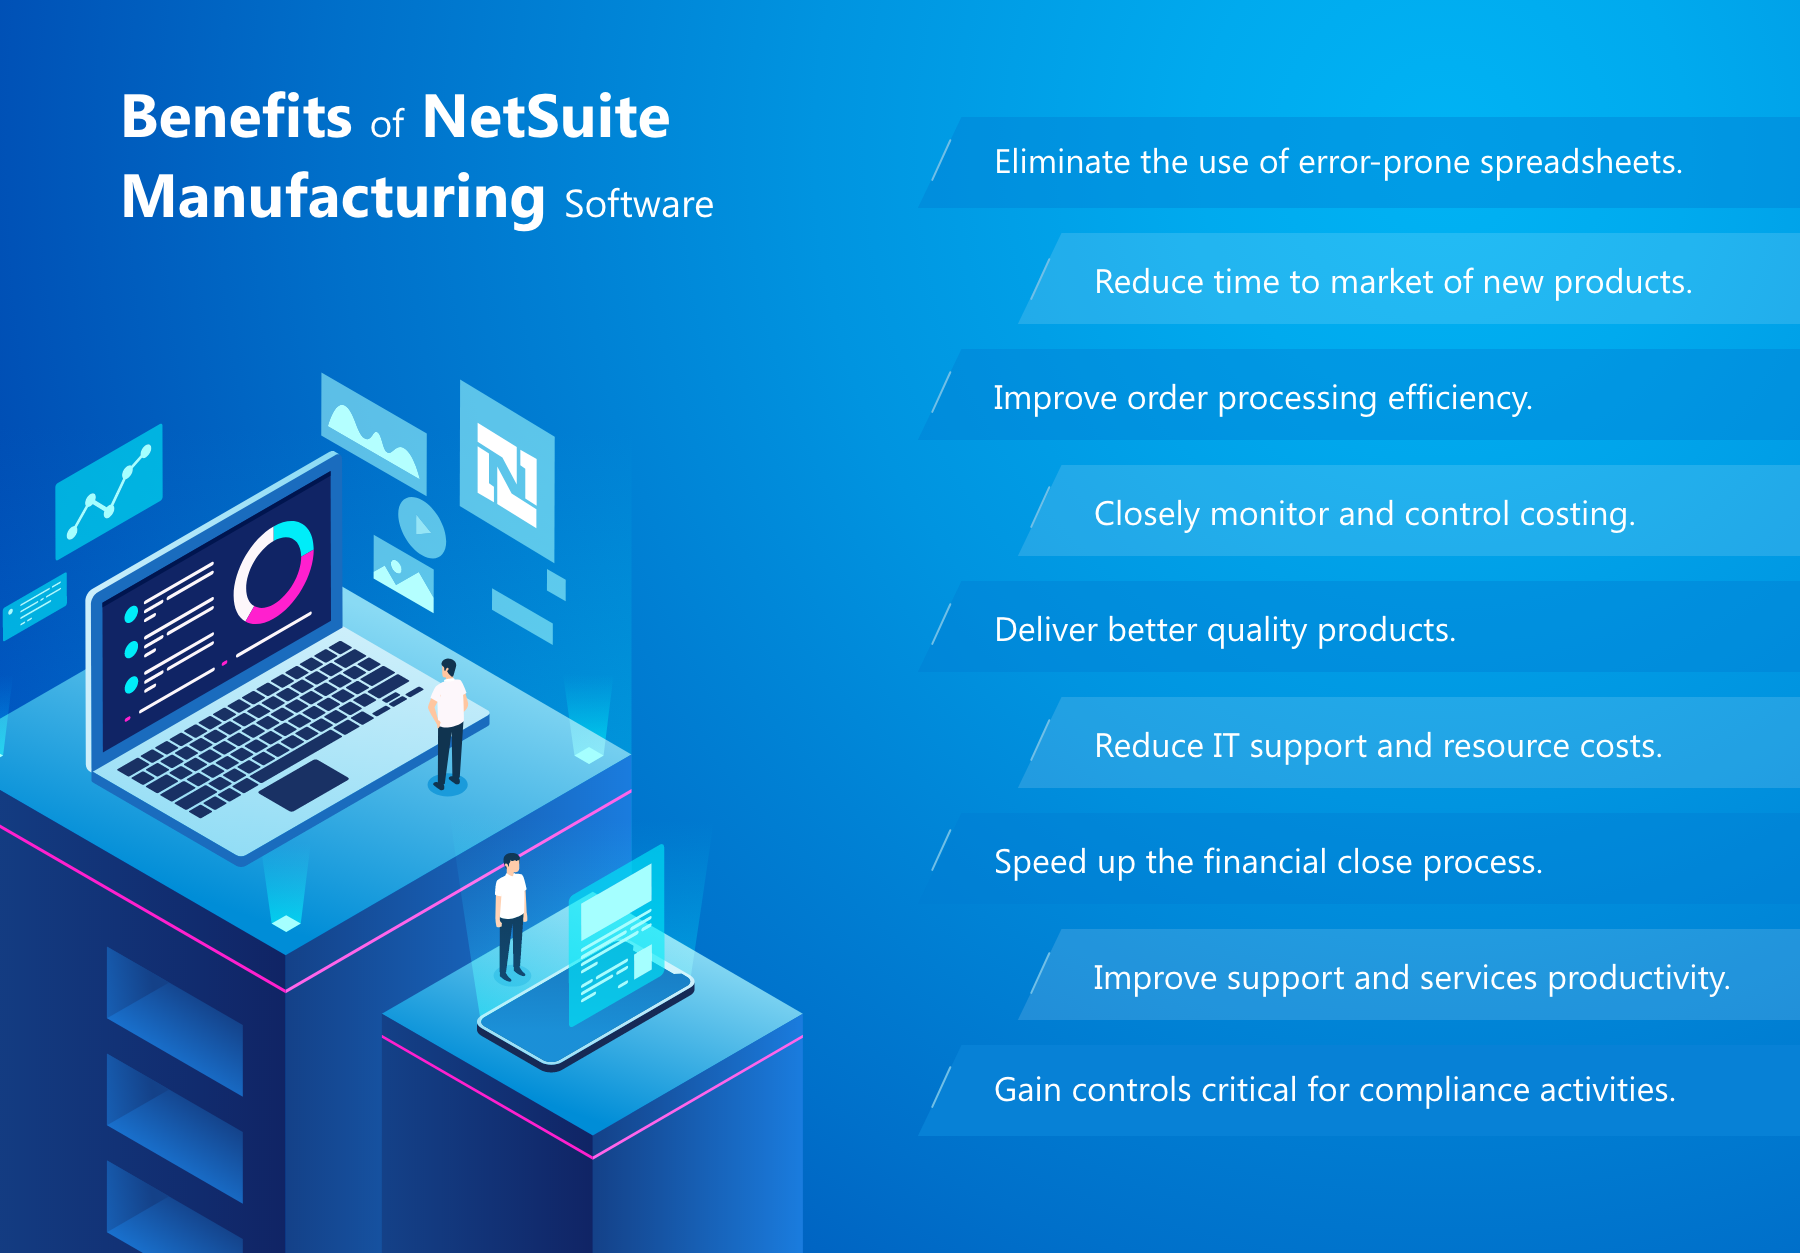 Benefits of NetSuite manufacturing